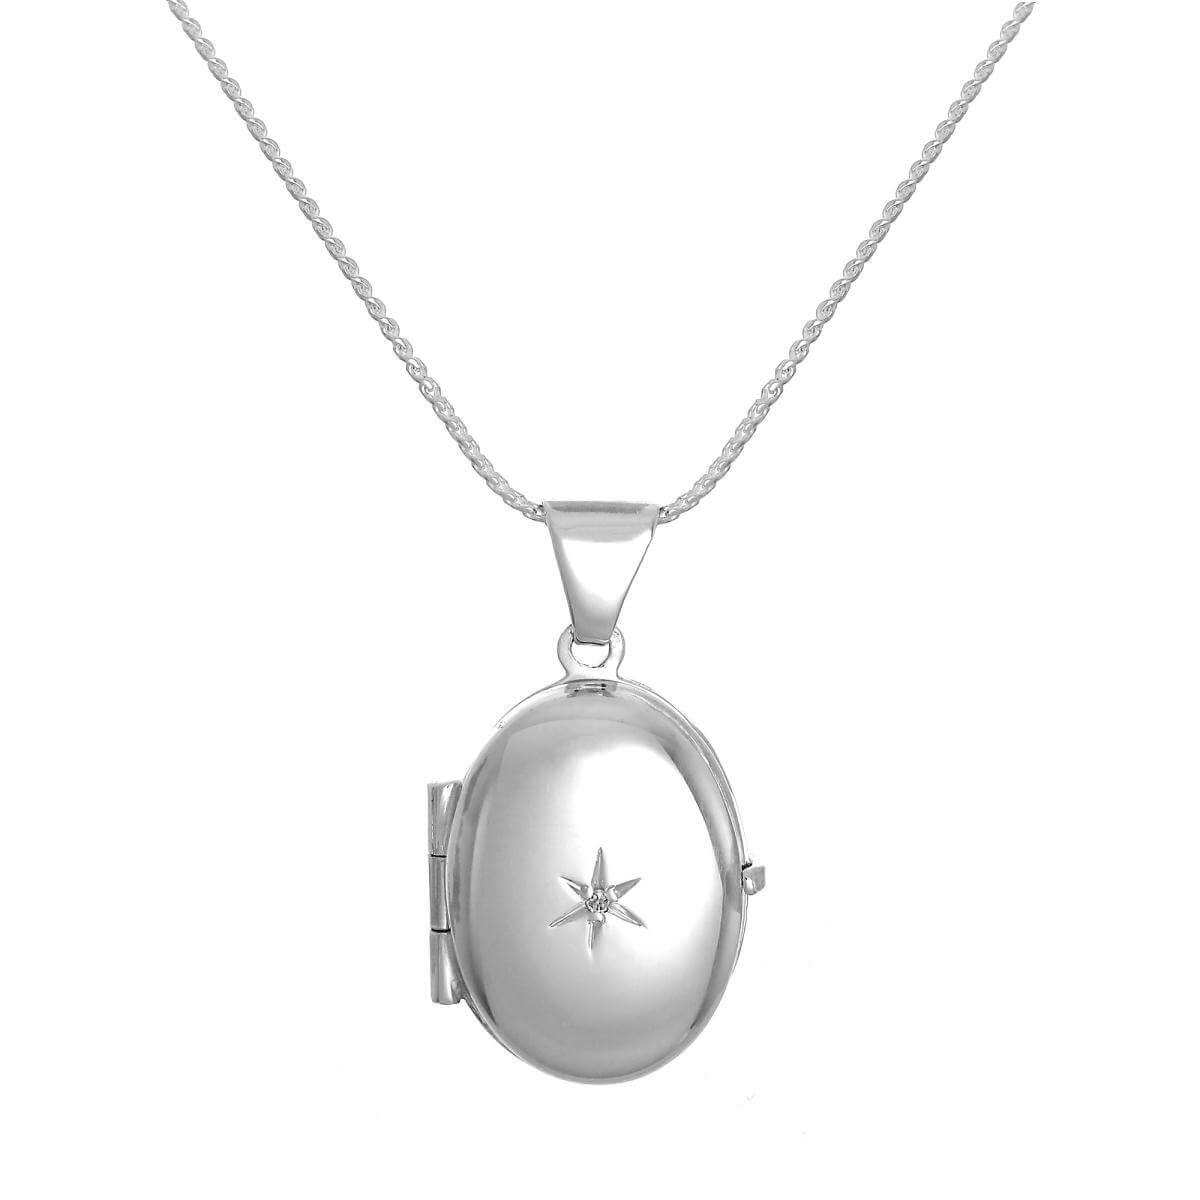 Small Sterling Silver Oval Locket with Diamond on Chain